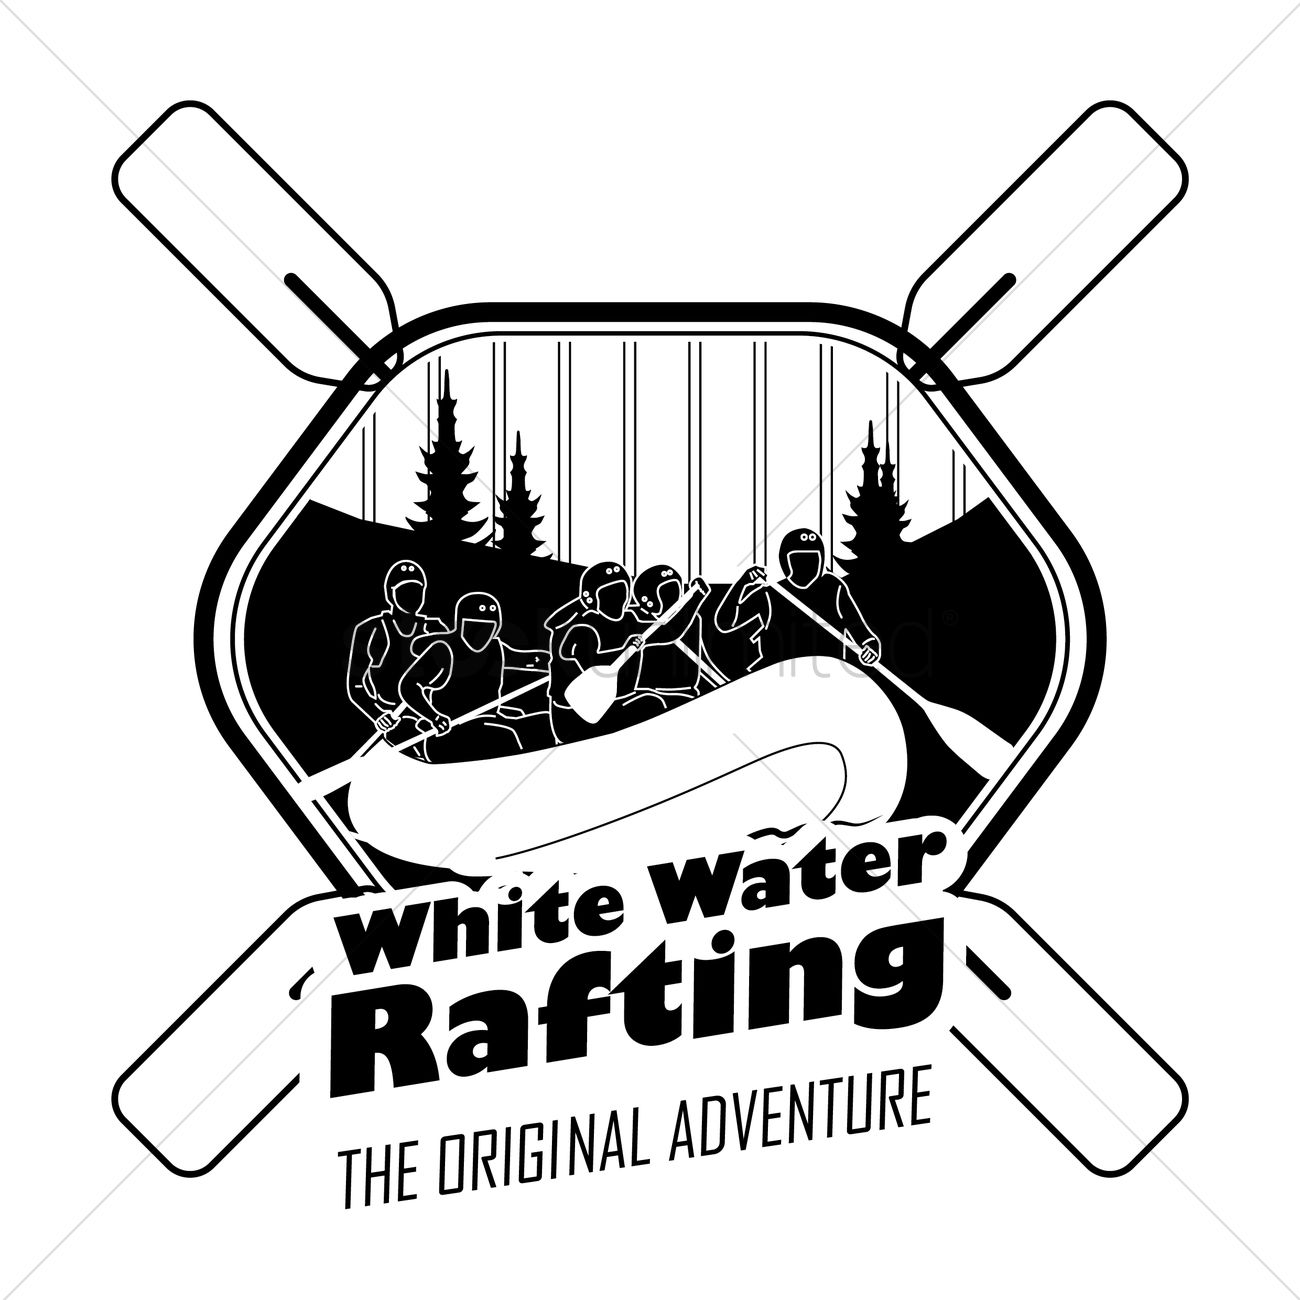 White Water Rafting Label Vector Image